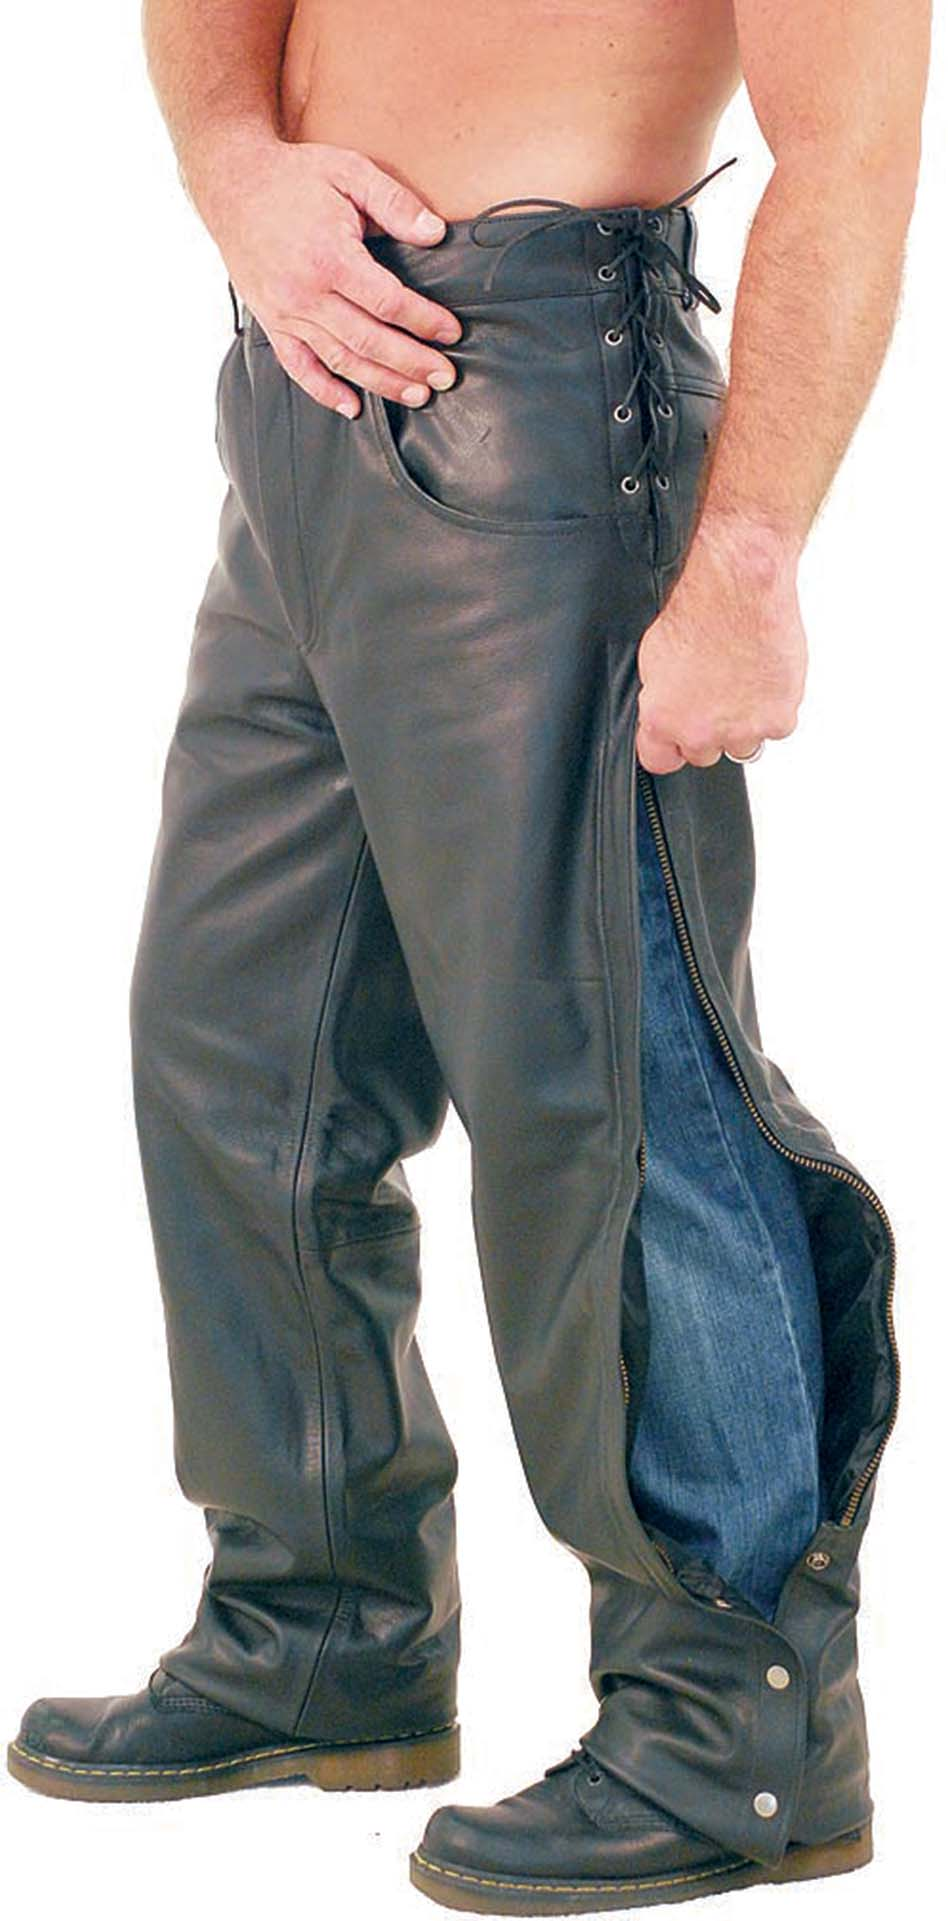 Side lace leather motorcycle overpants for men, a.k.a. chap pants with rawhide side lacing at waist to adjust for best fit.